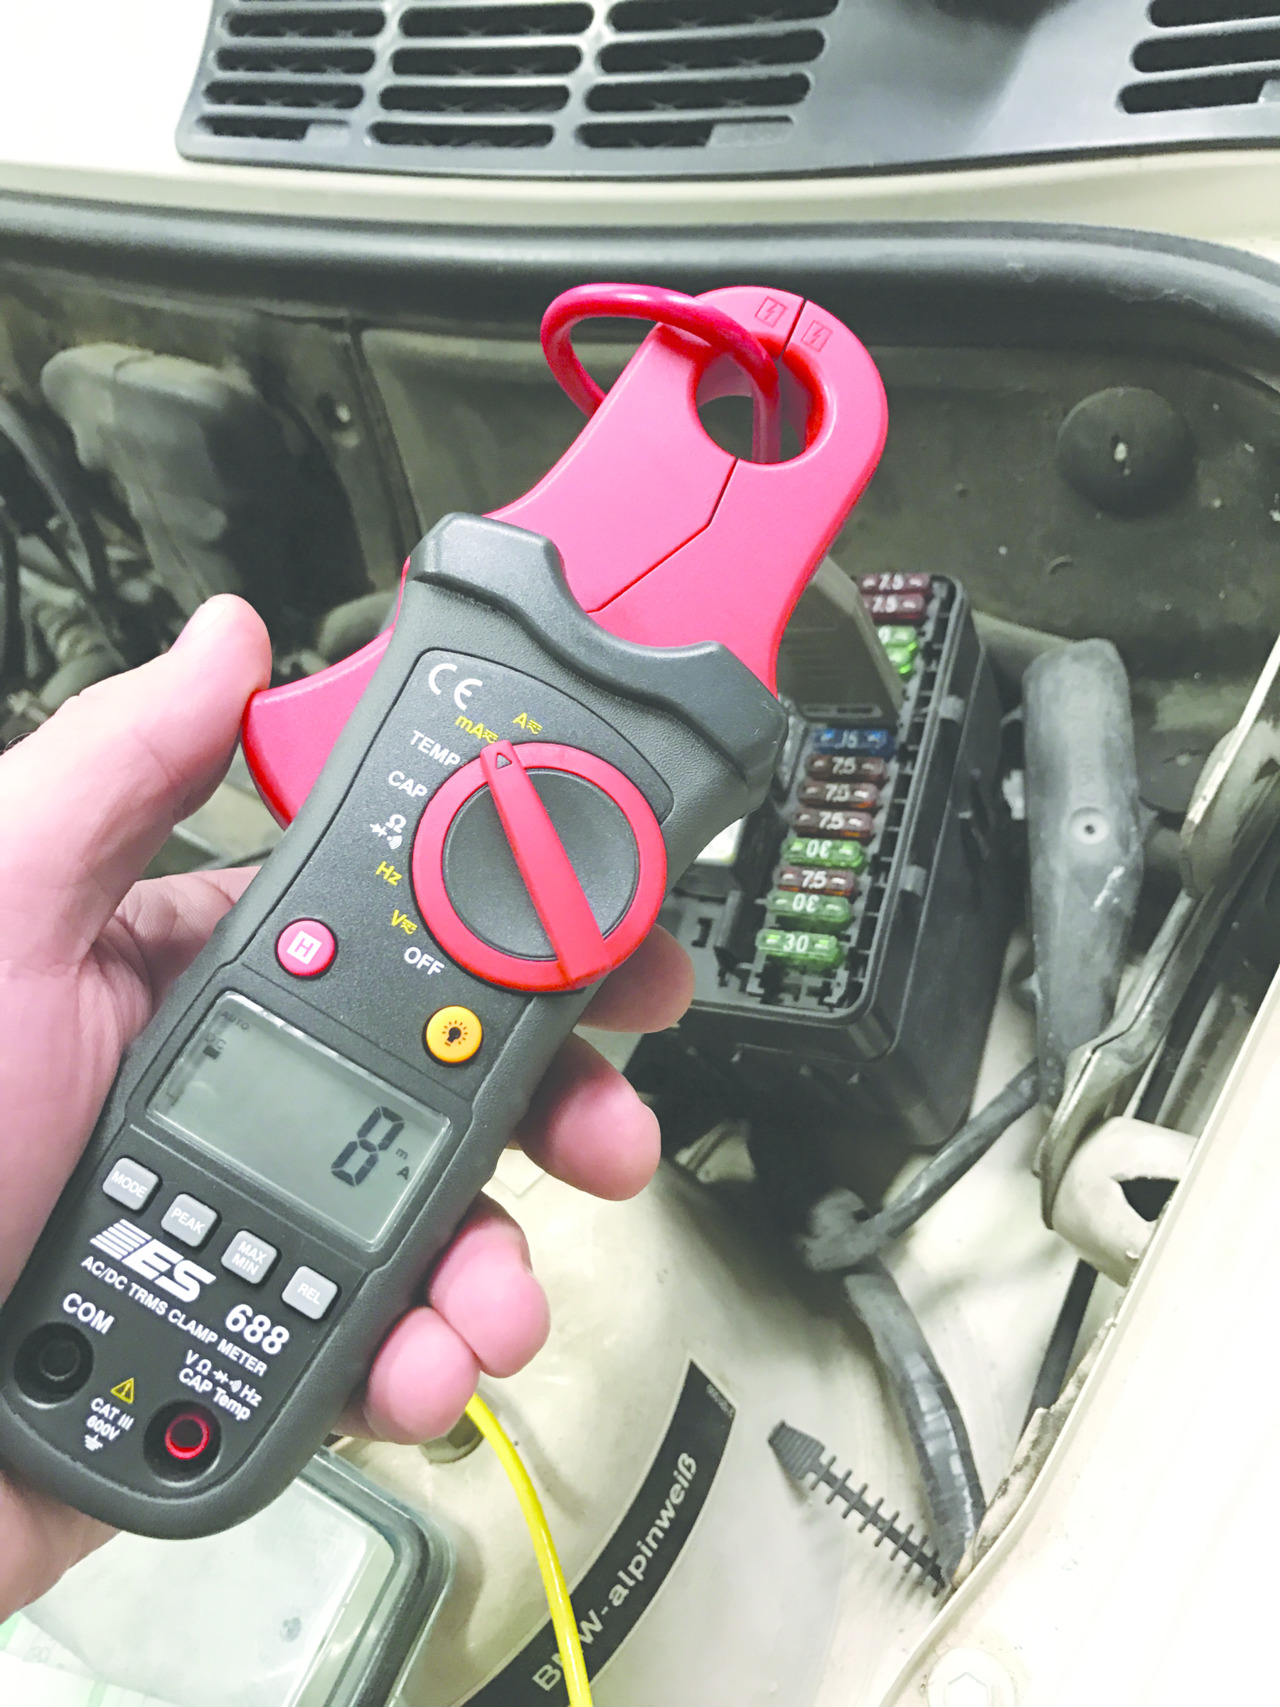 Overview of tools used for electrical system testing